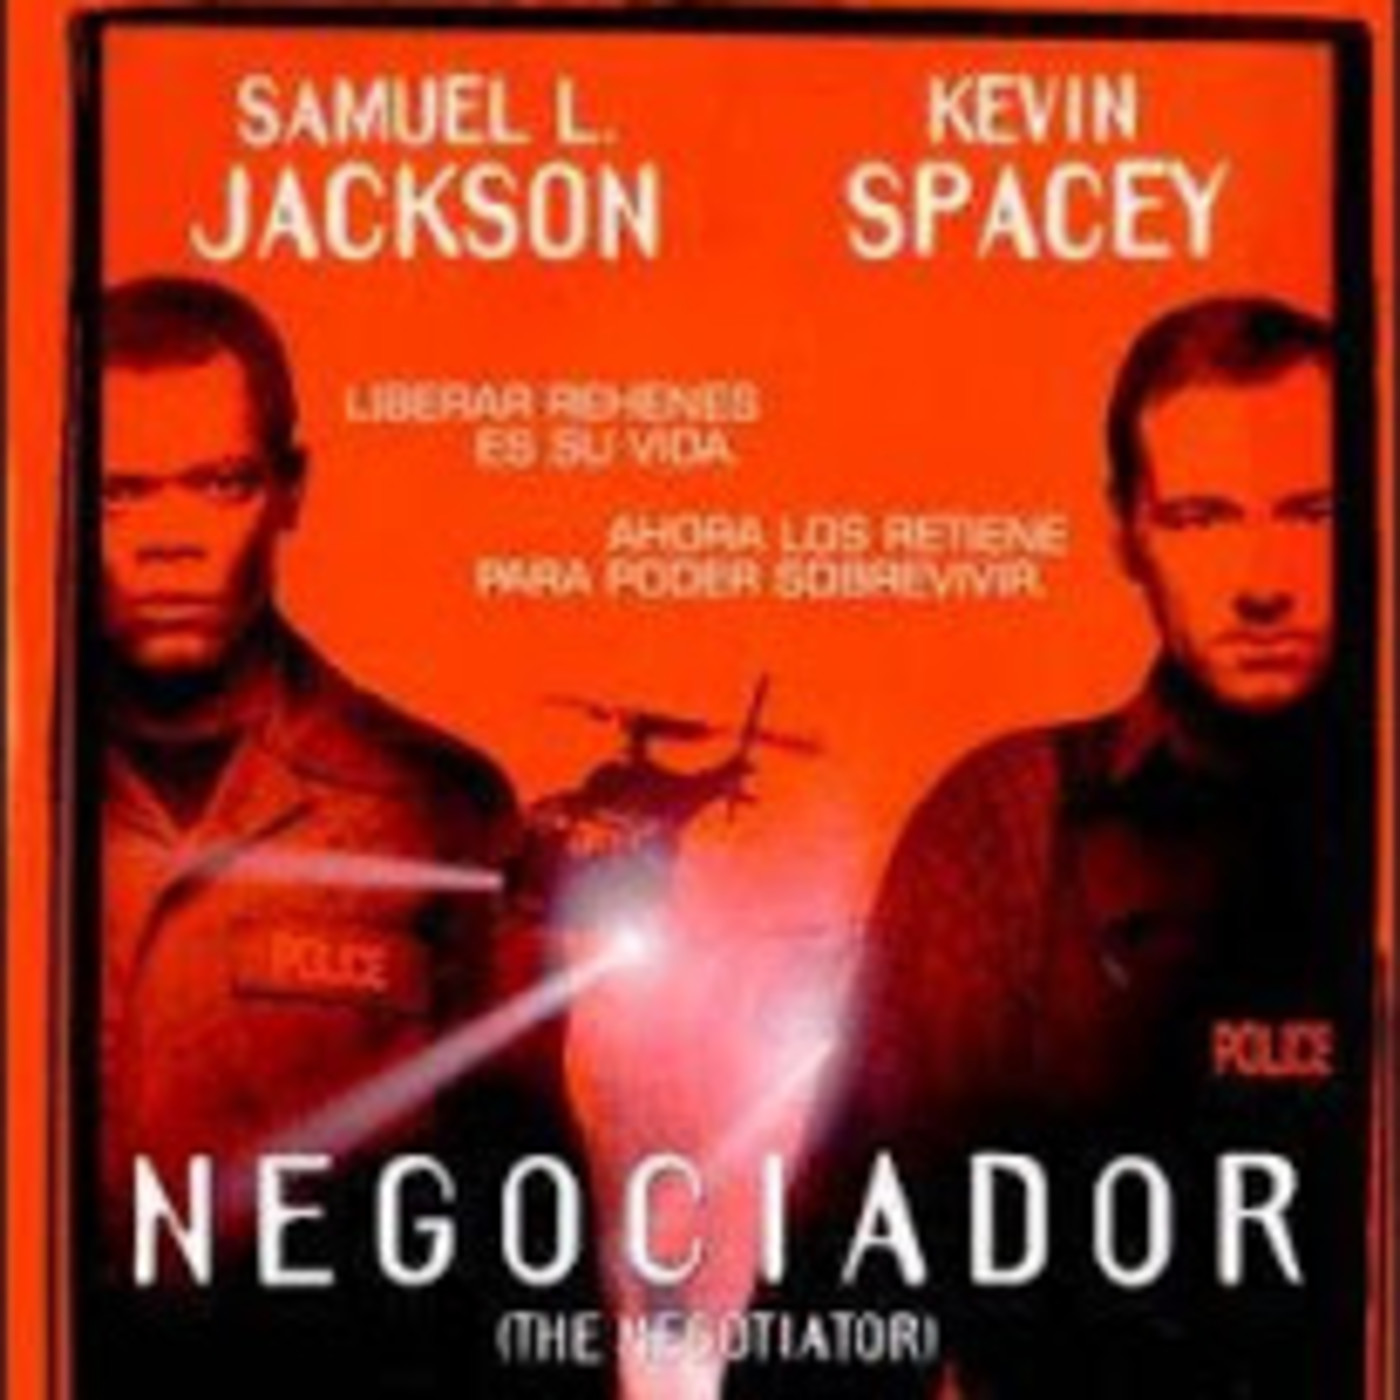 Negociador 1998 En Películas En Audio No Audesc En Mp33103